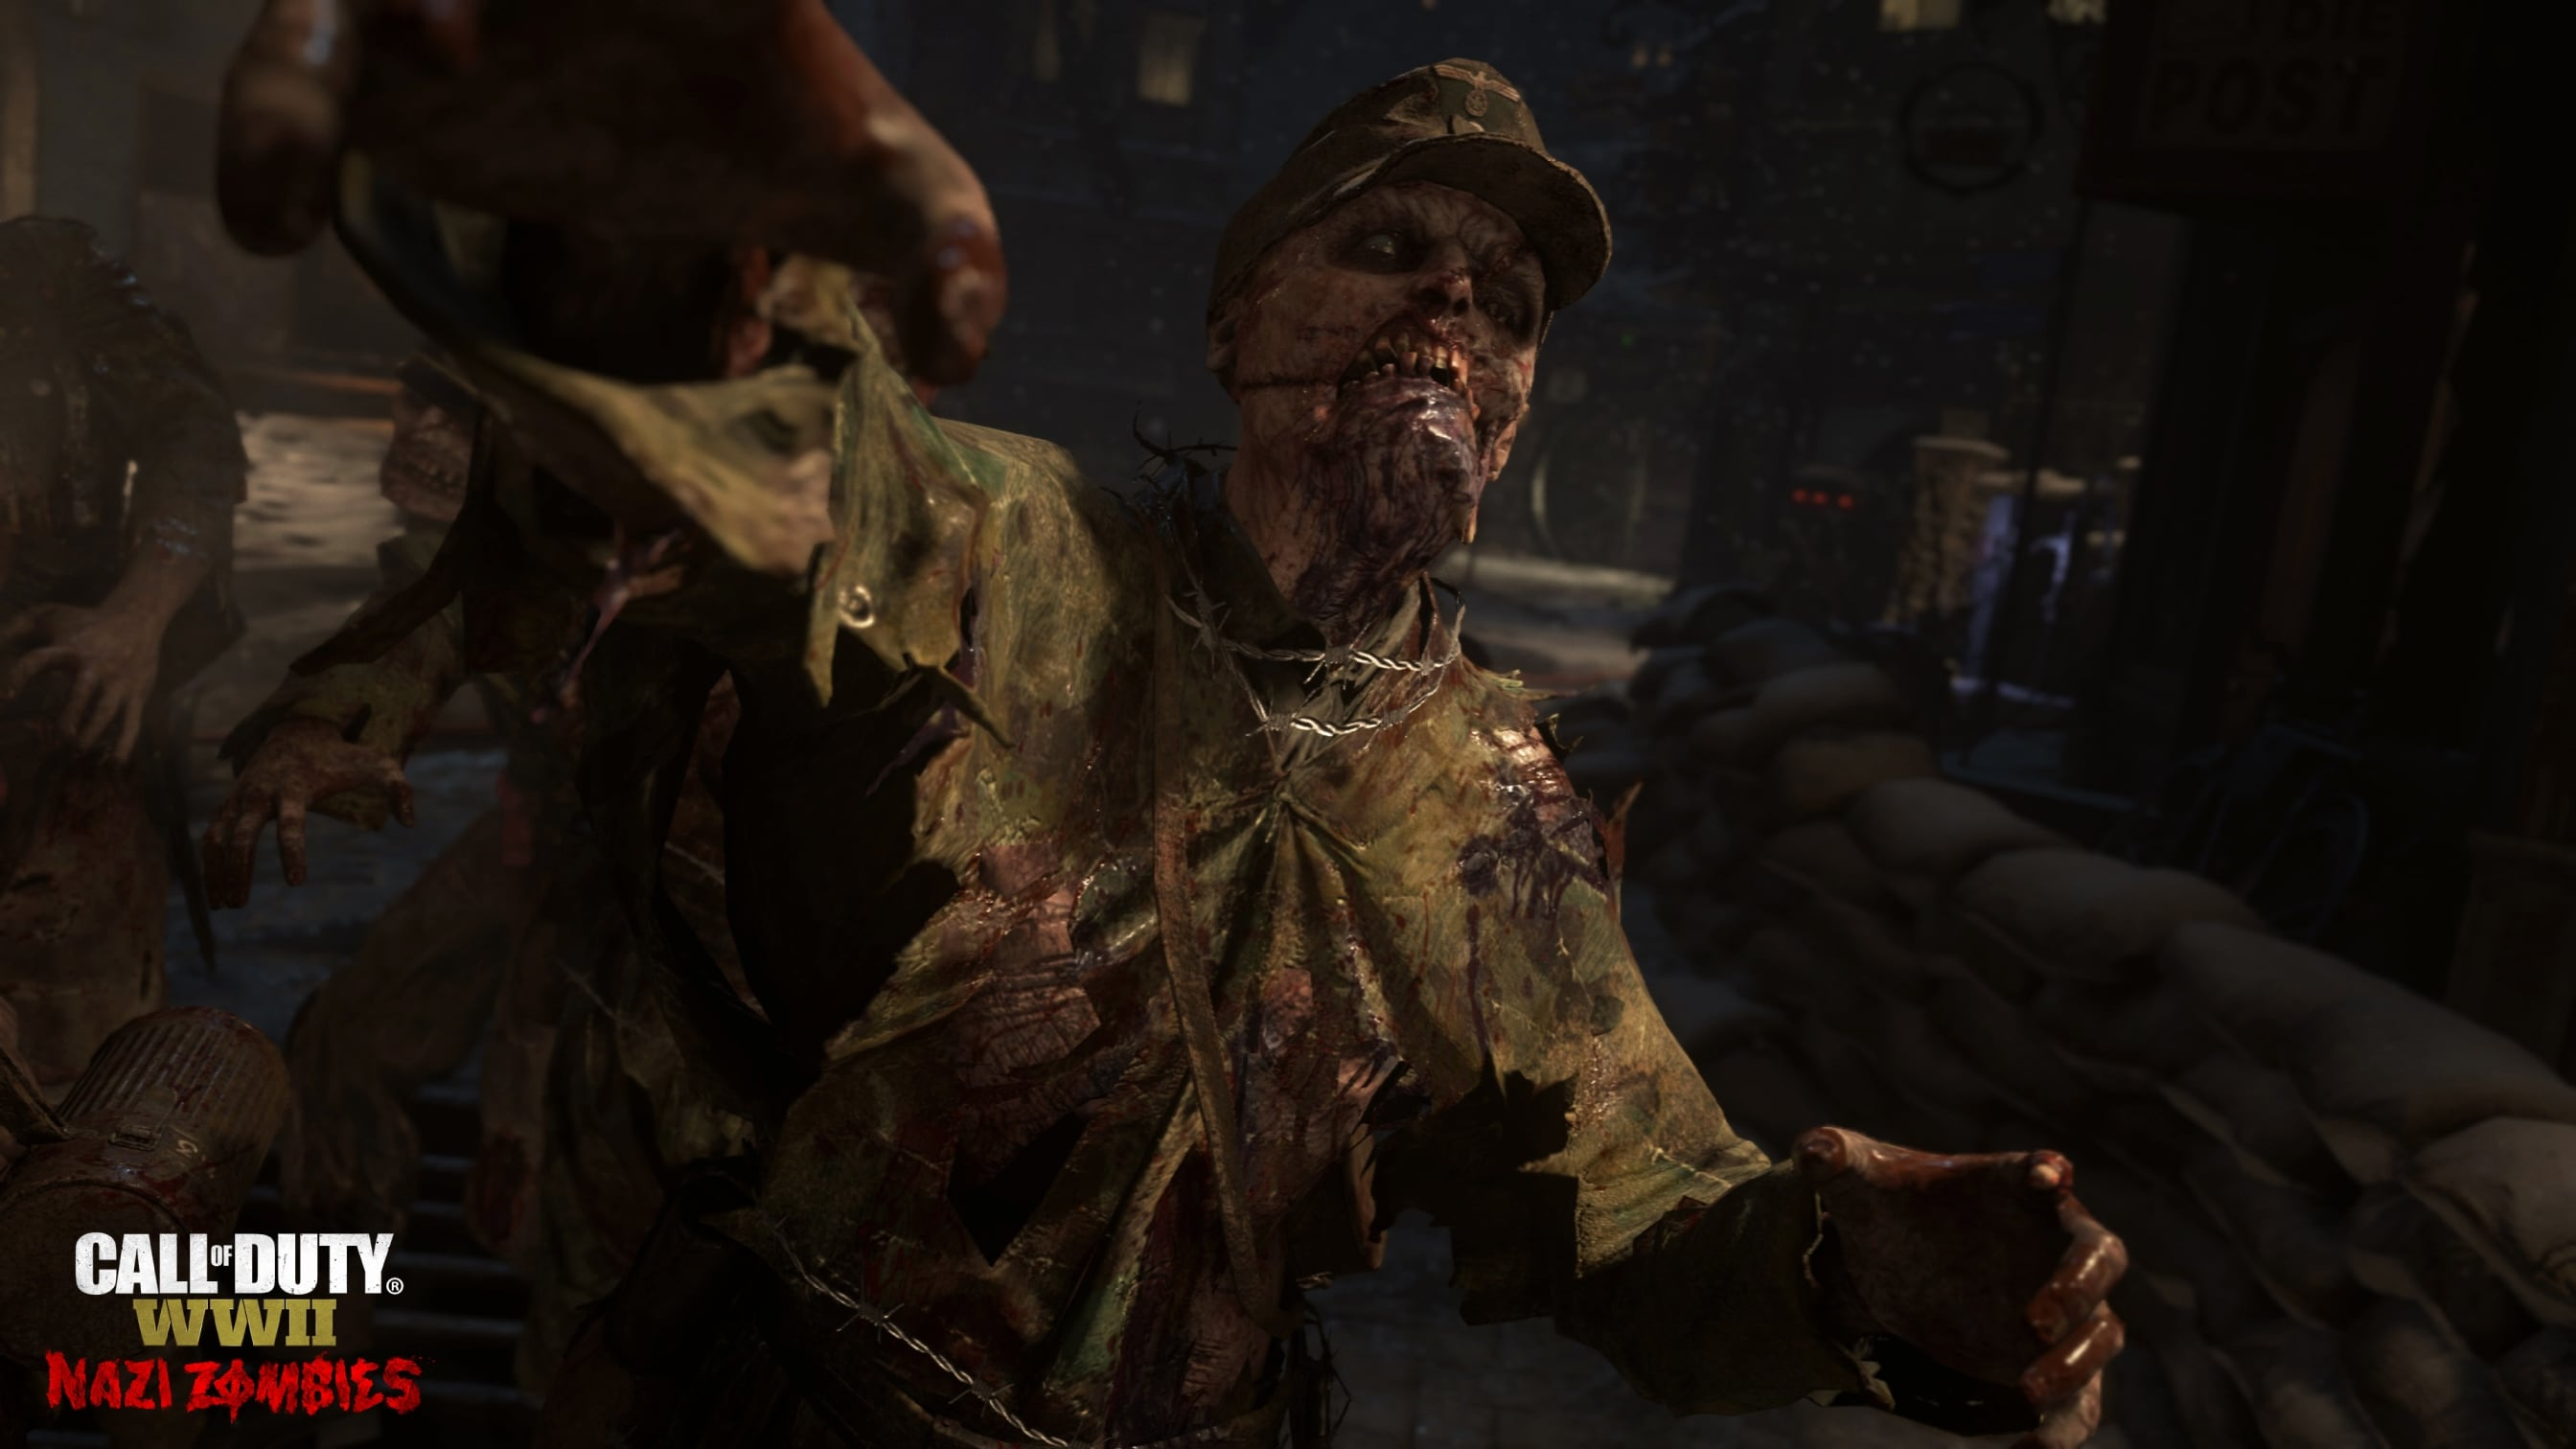 Call of Duty WWII – Nazi Zombies (2)